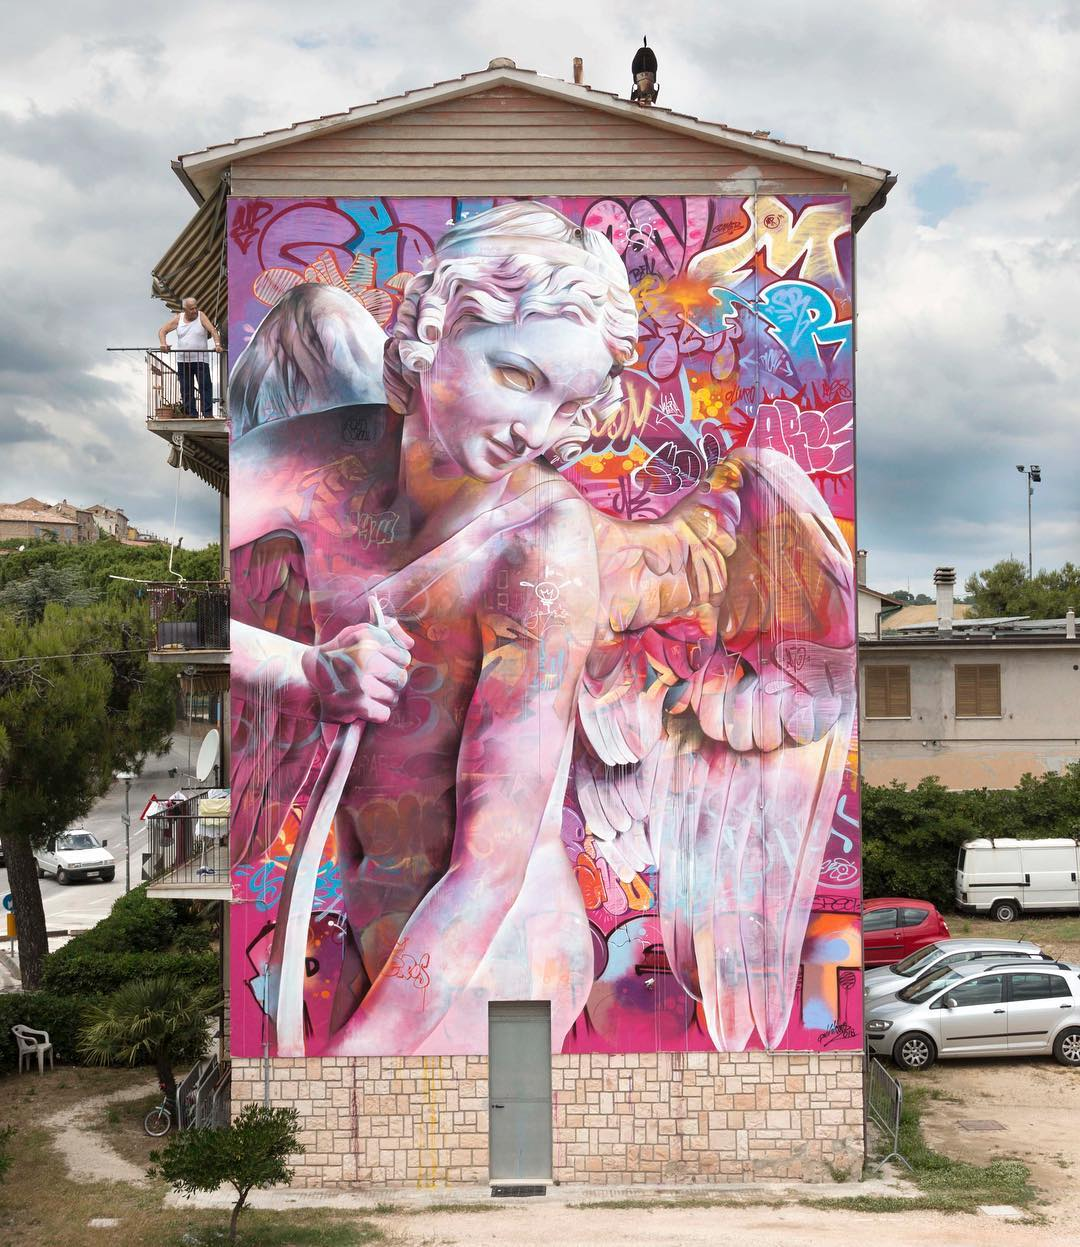 Graffiti lover - By Pichiavo in Montecosaro, Italy (3 photos) - Street Art Utopia